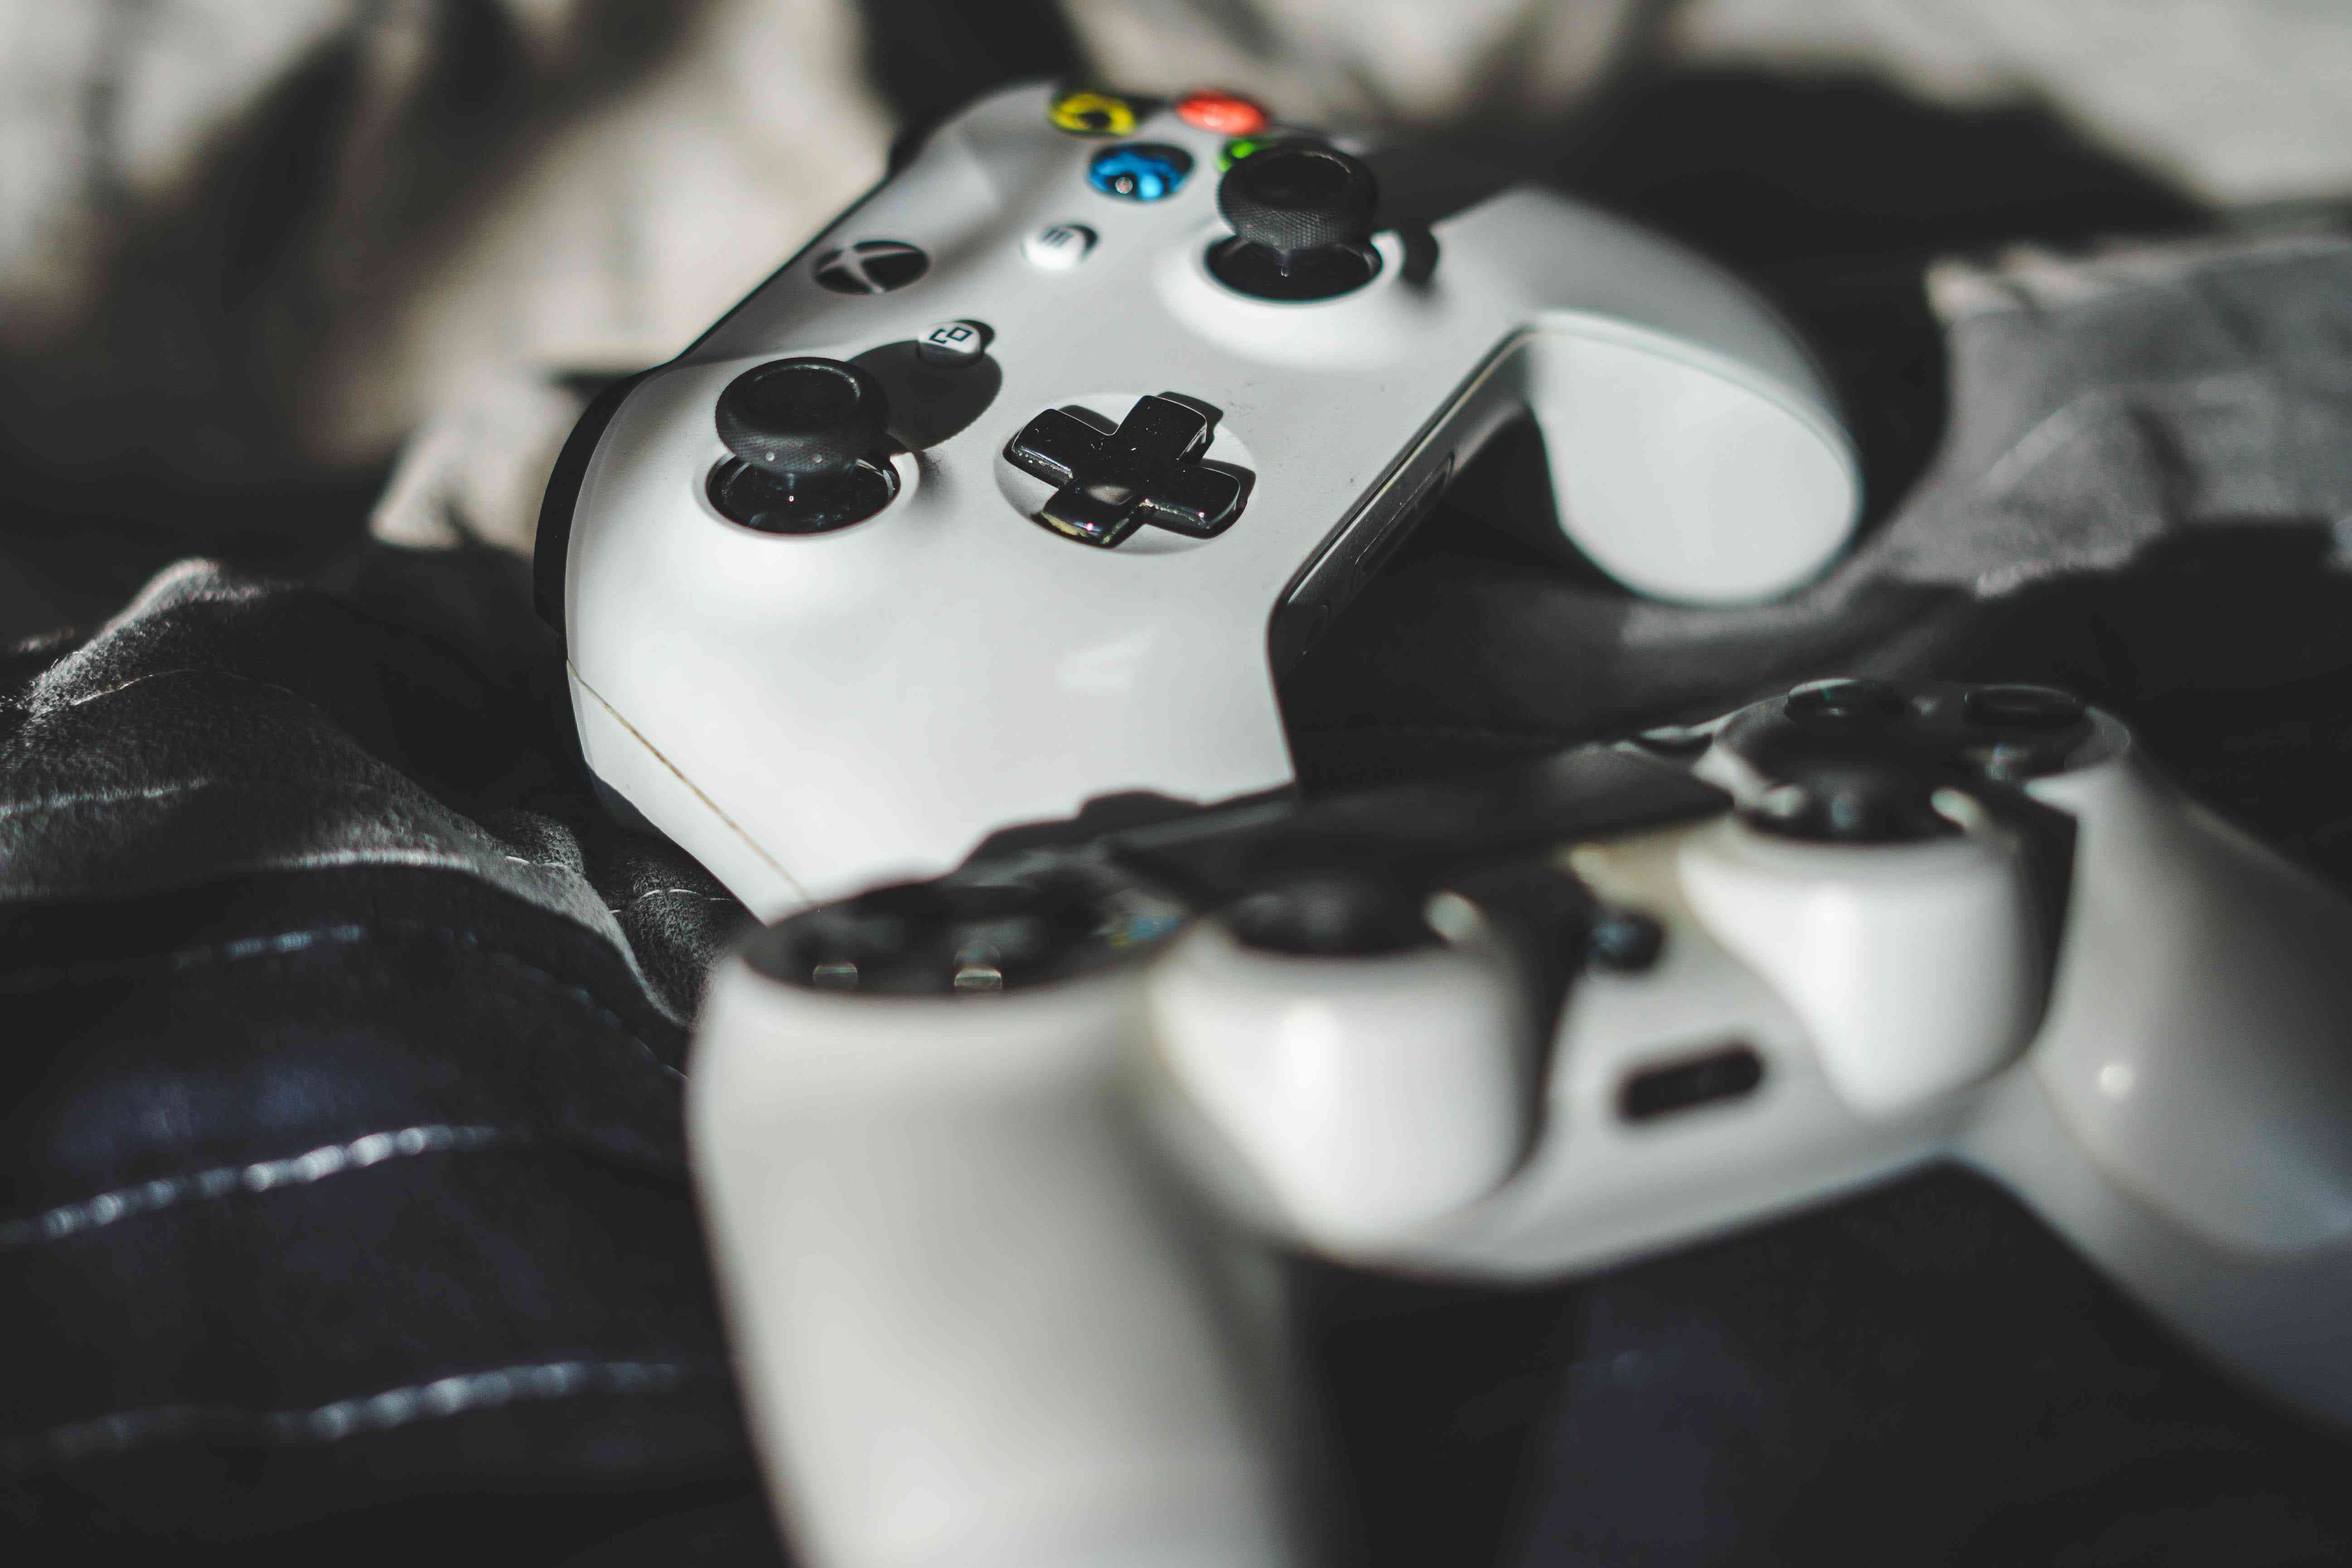 Xbox controllers laying on fabric.